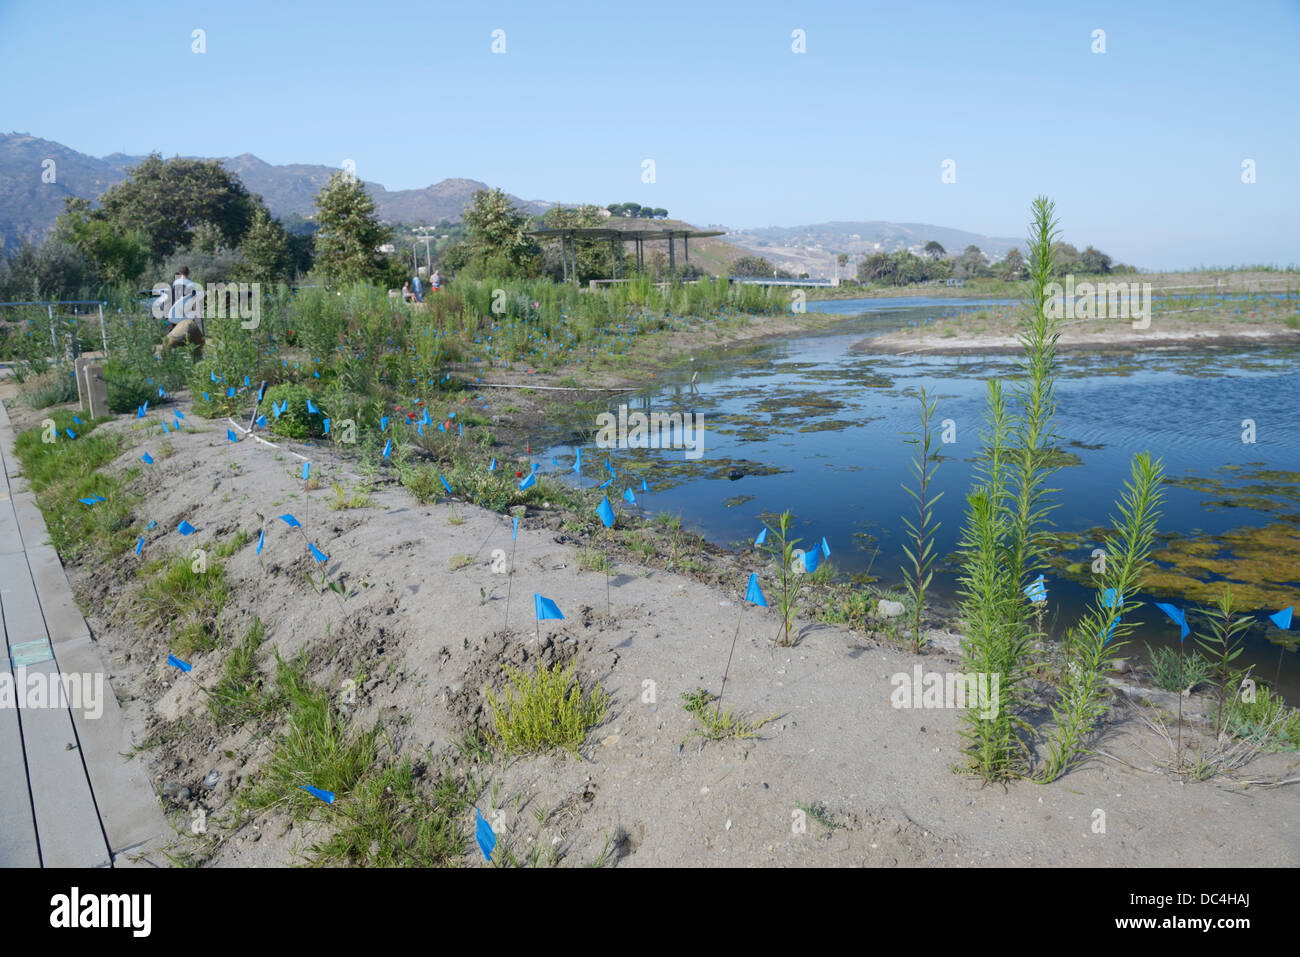 Malibu Lagoon restoration project.  A multi-agency group is working to improve the estuary's ecological health - Stock Image